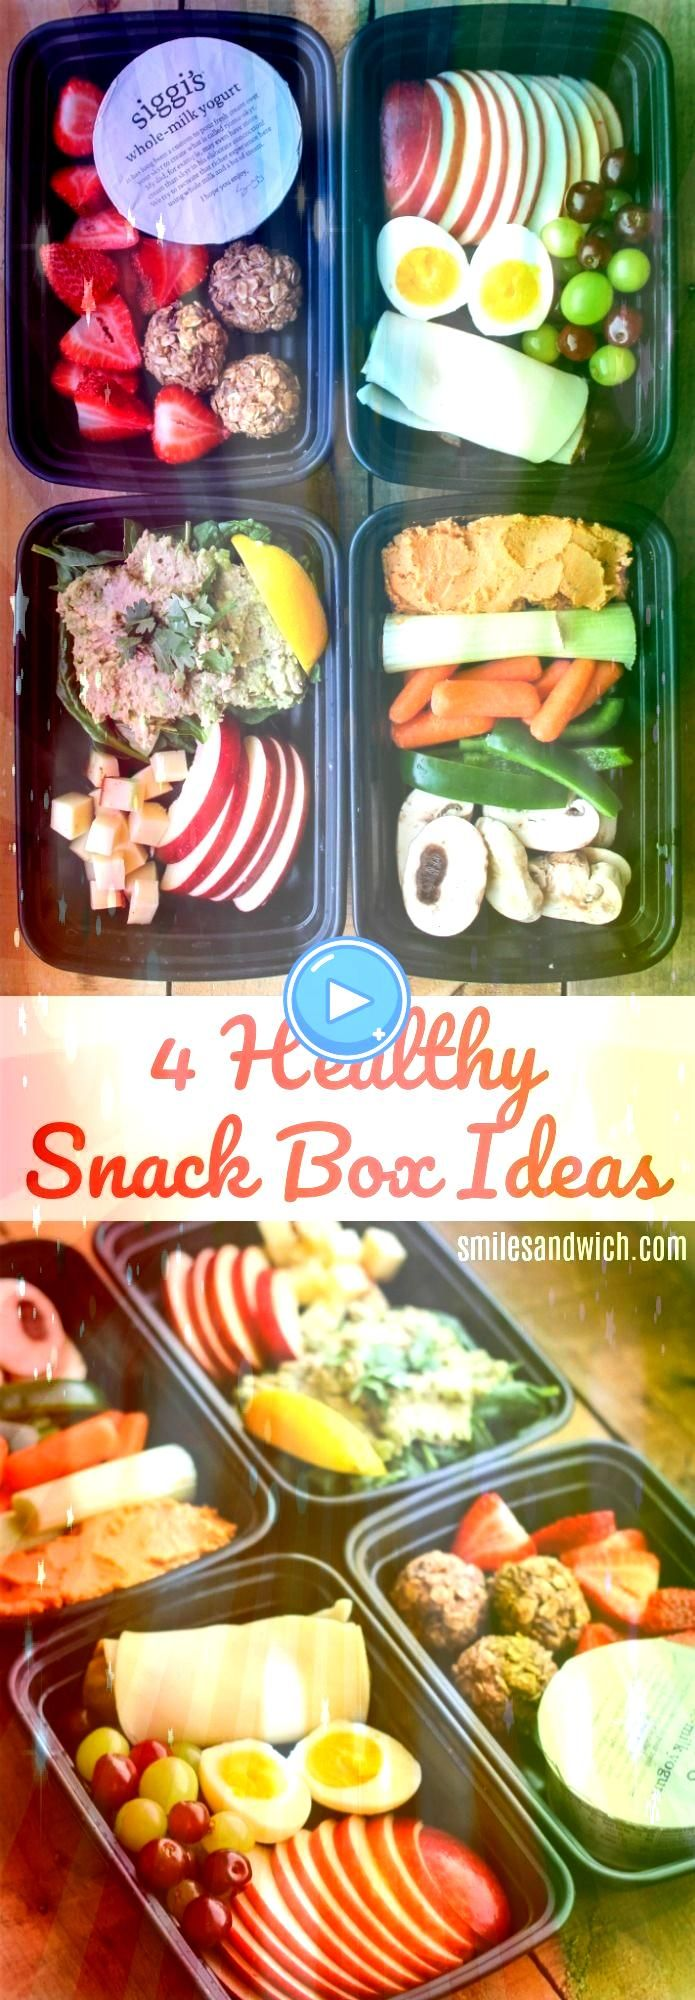 Healthy Snack Box Ideas 4 Healthy Snack Box Ideas  nocook low carb snack recipes that are prefect for busy weeks4 Healthy Snack Box Ideas  nocook low carb snack recipes t...